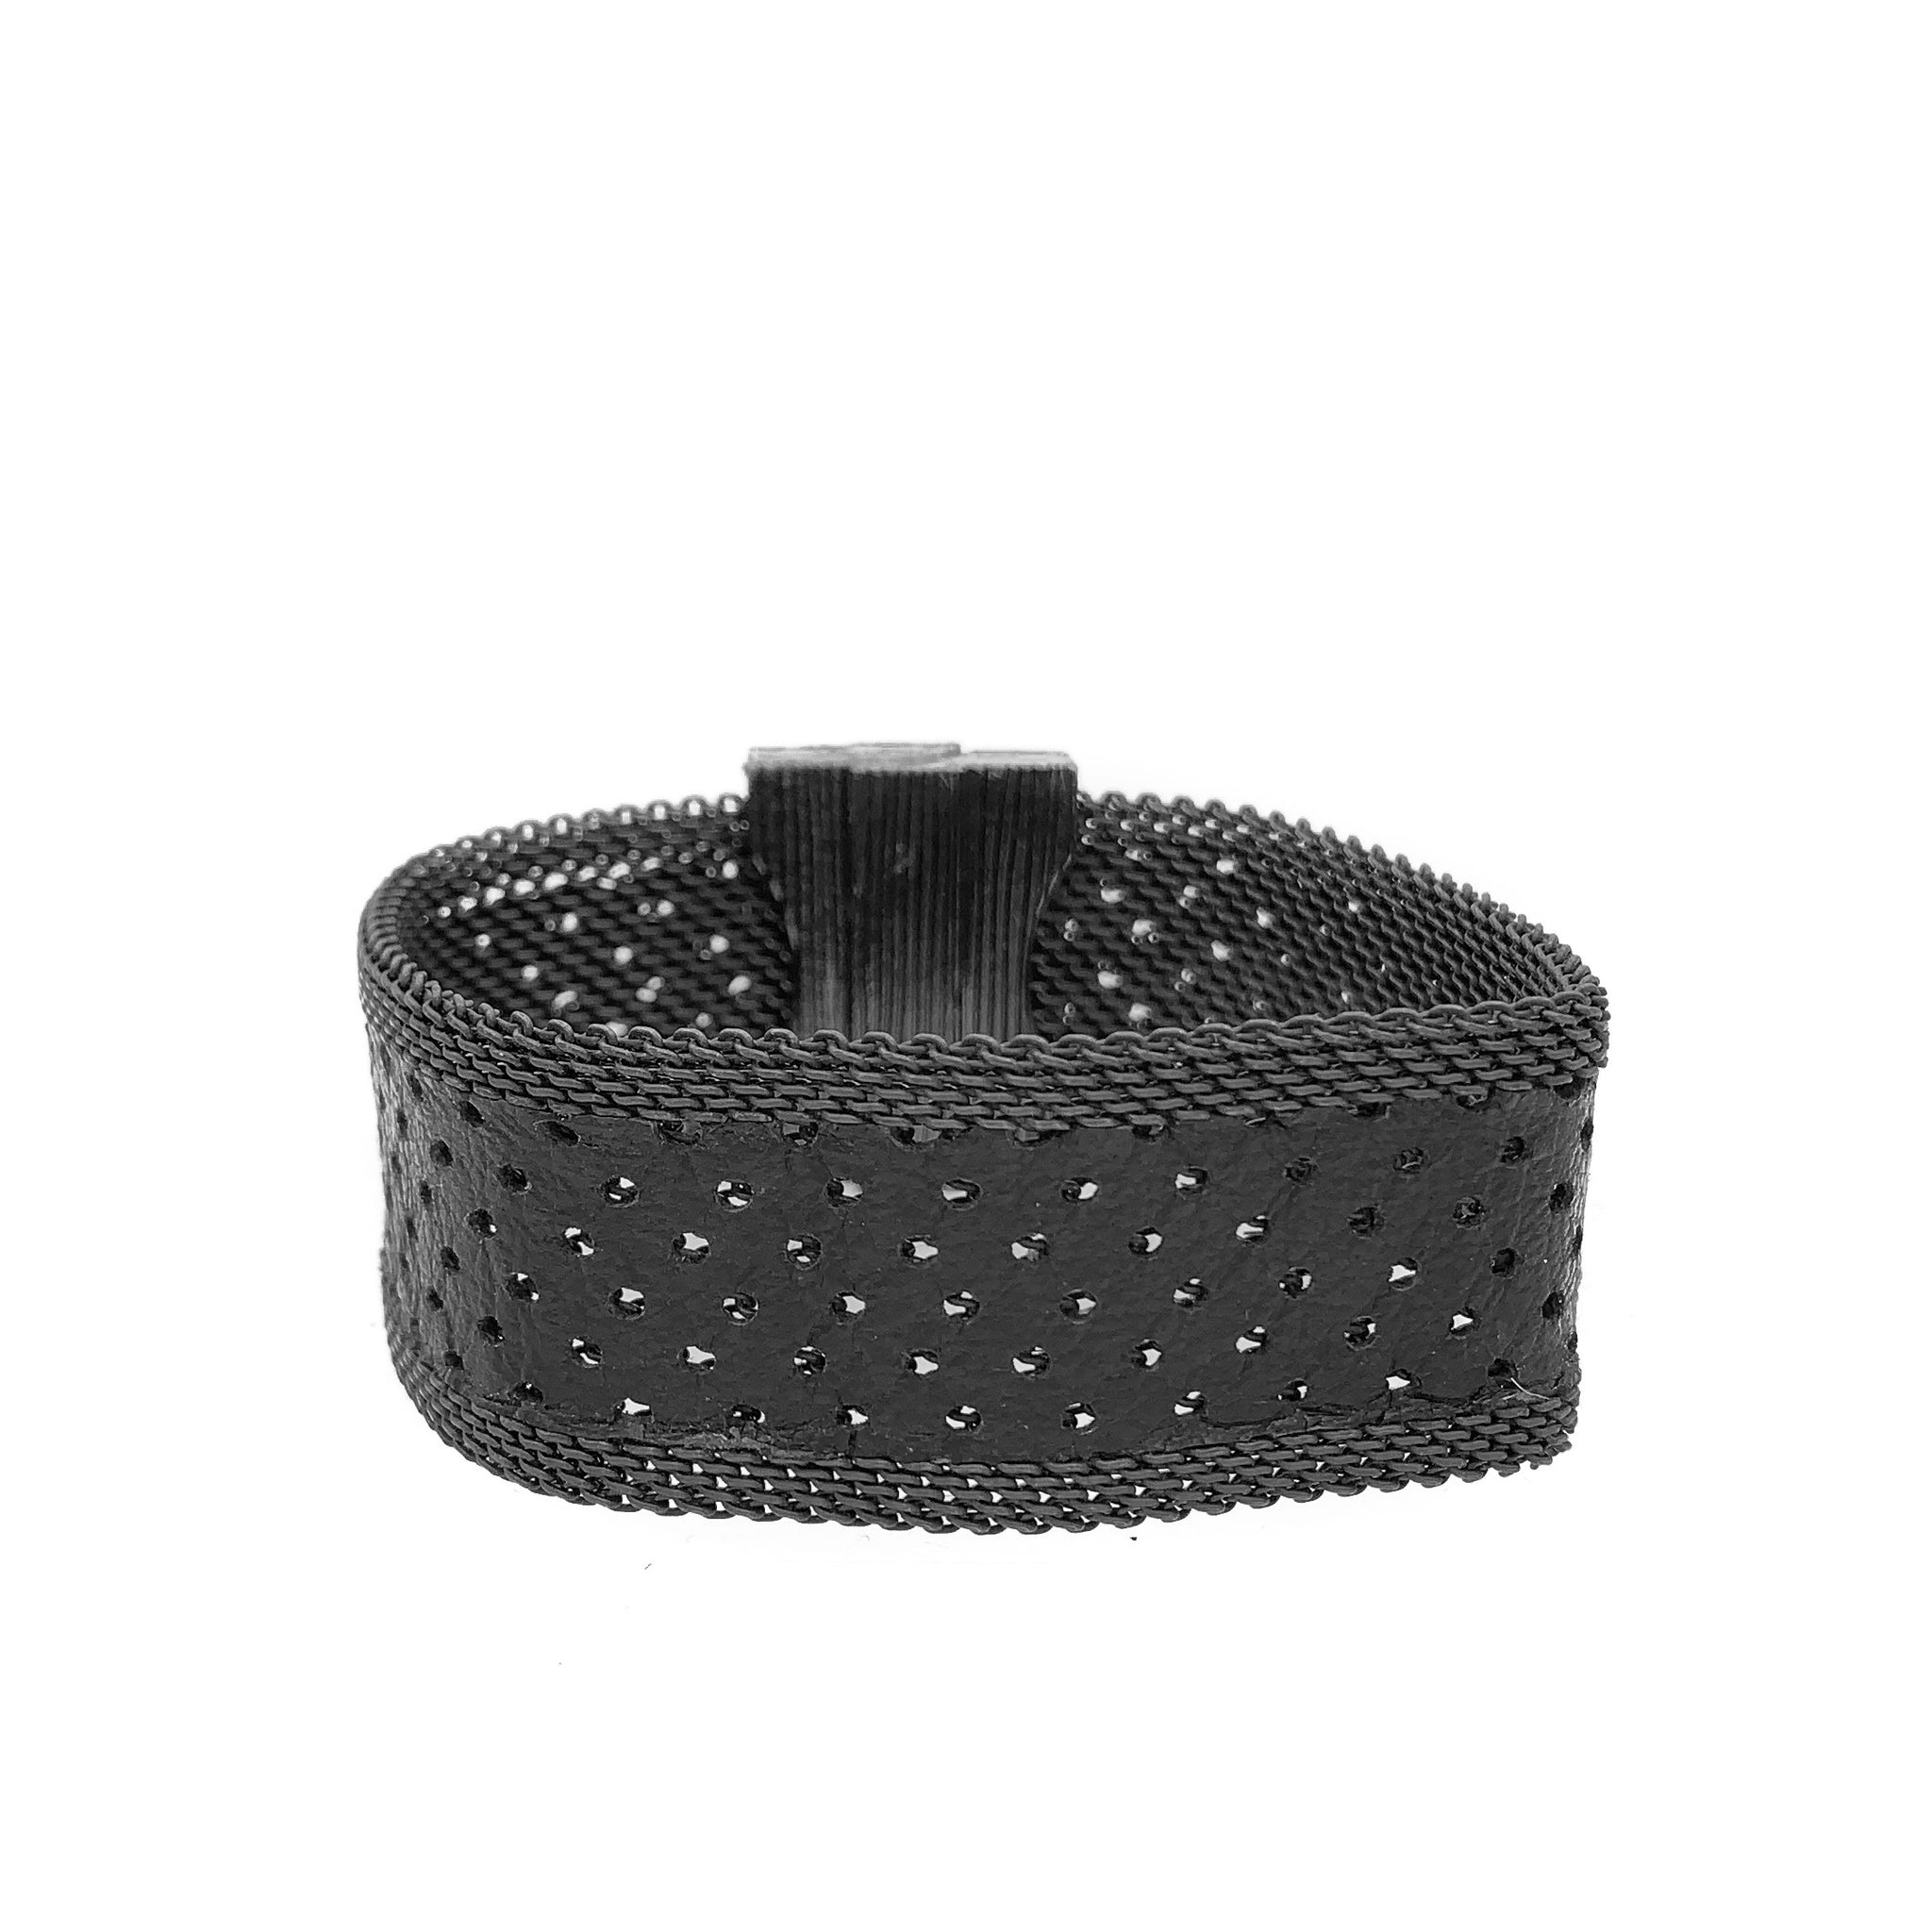 Men's Narrow Black Perforated Leather Cuff